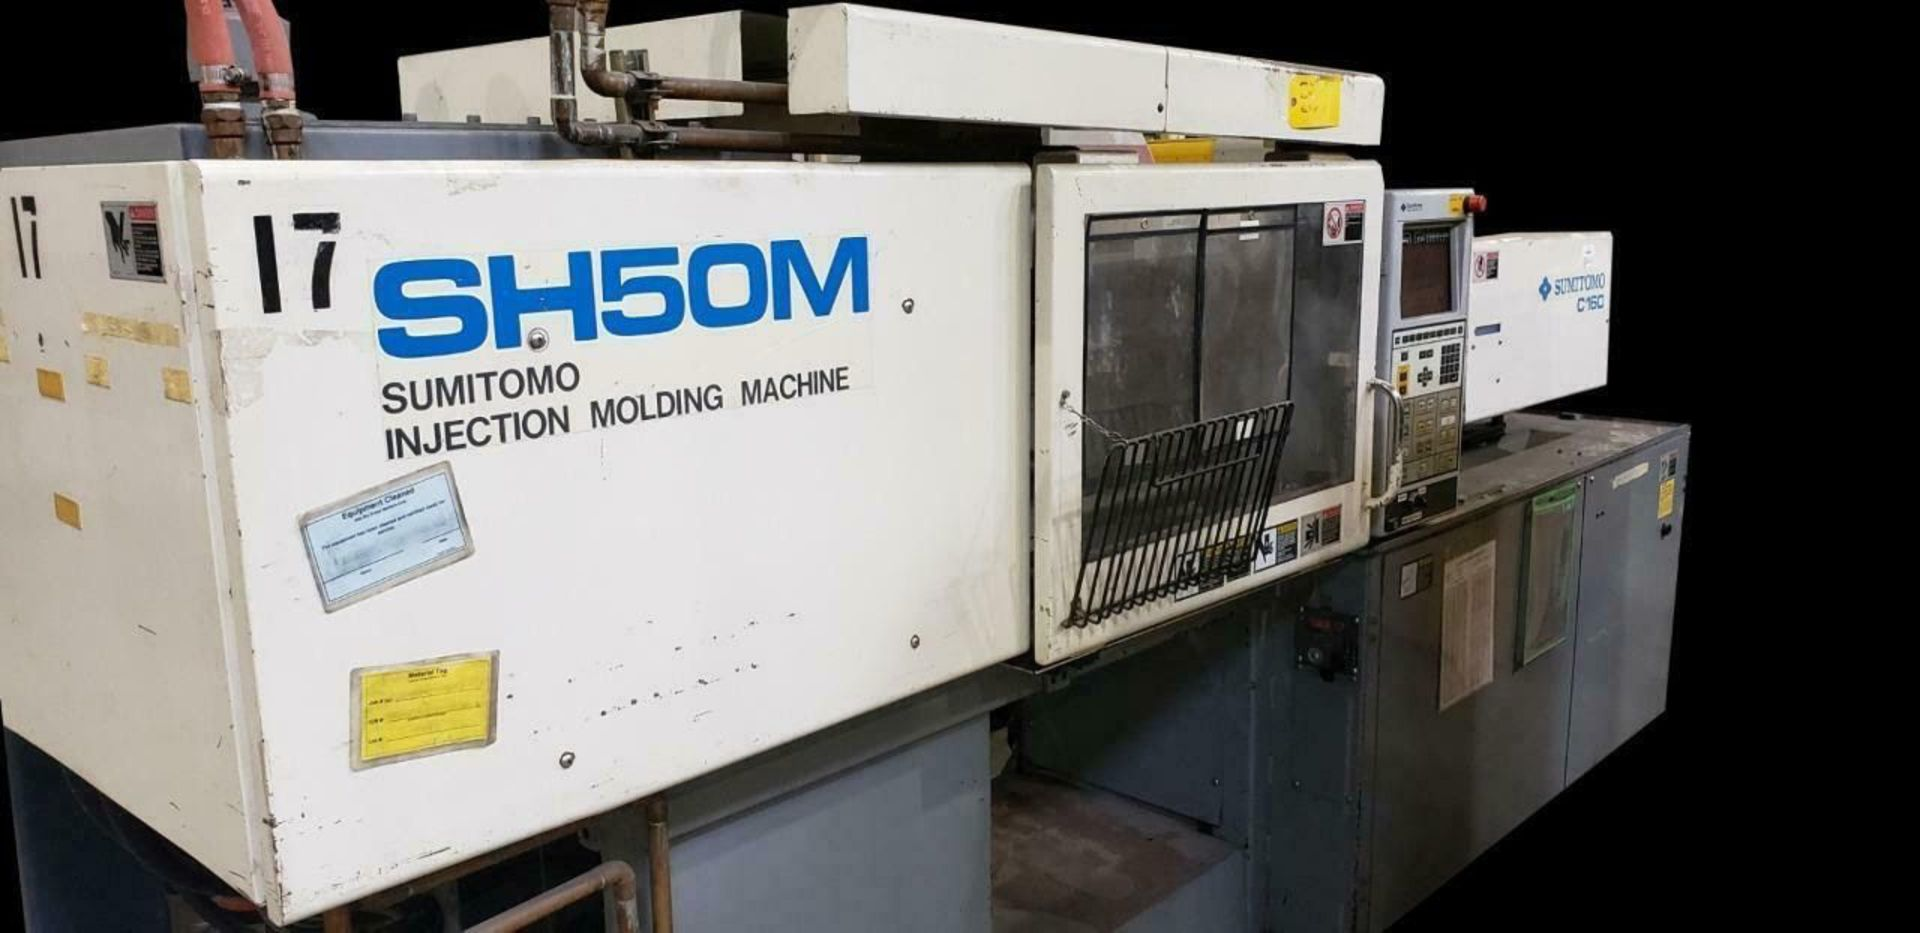 Lot 303B - SUMITOMO SH50M 50 TON INJECTION MOLDING MACHINE (MACHINE LOCATED AT DIFFERENT LOCATION) SHOT SIZE: